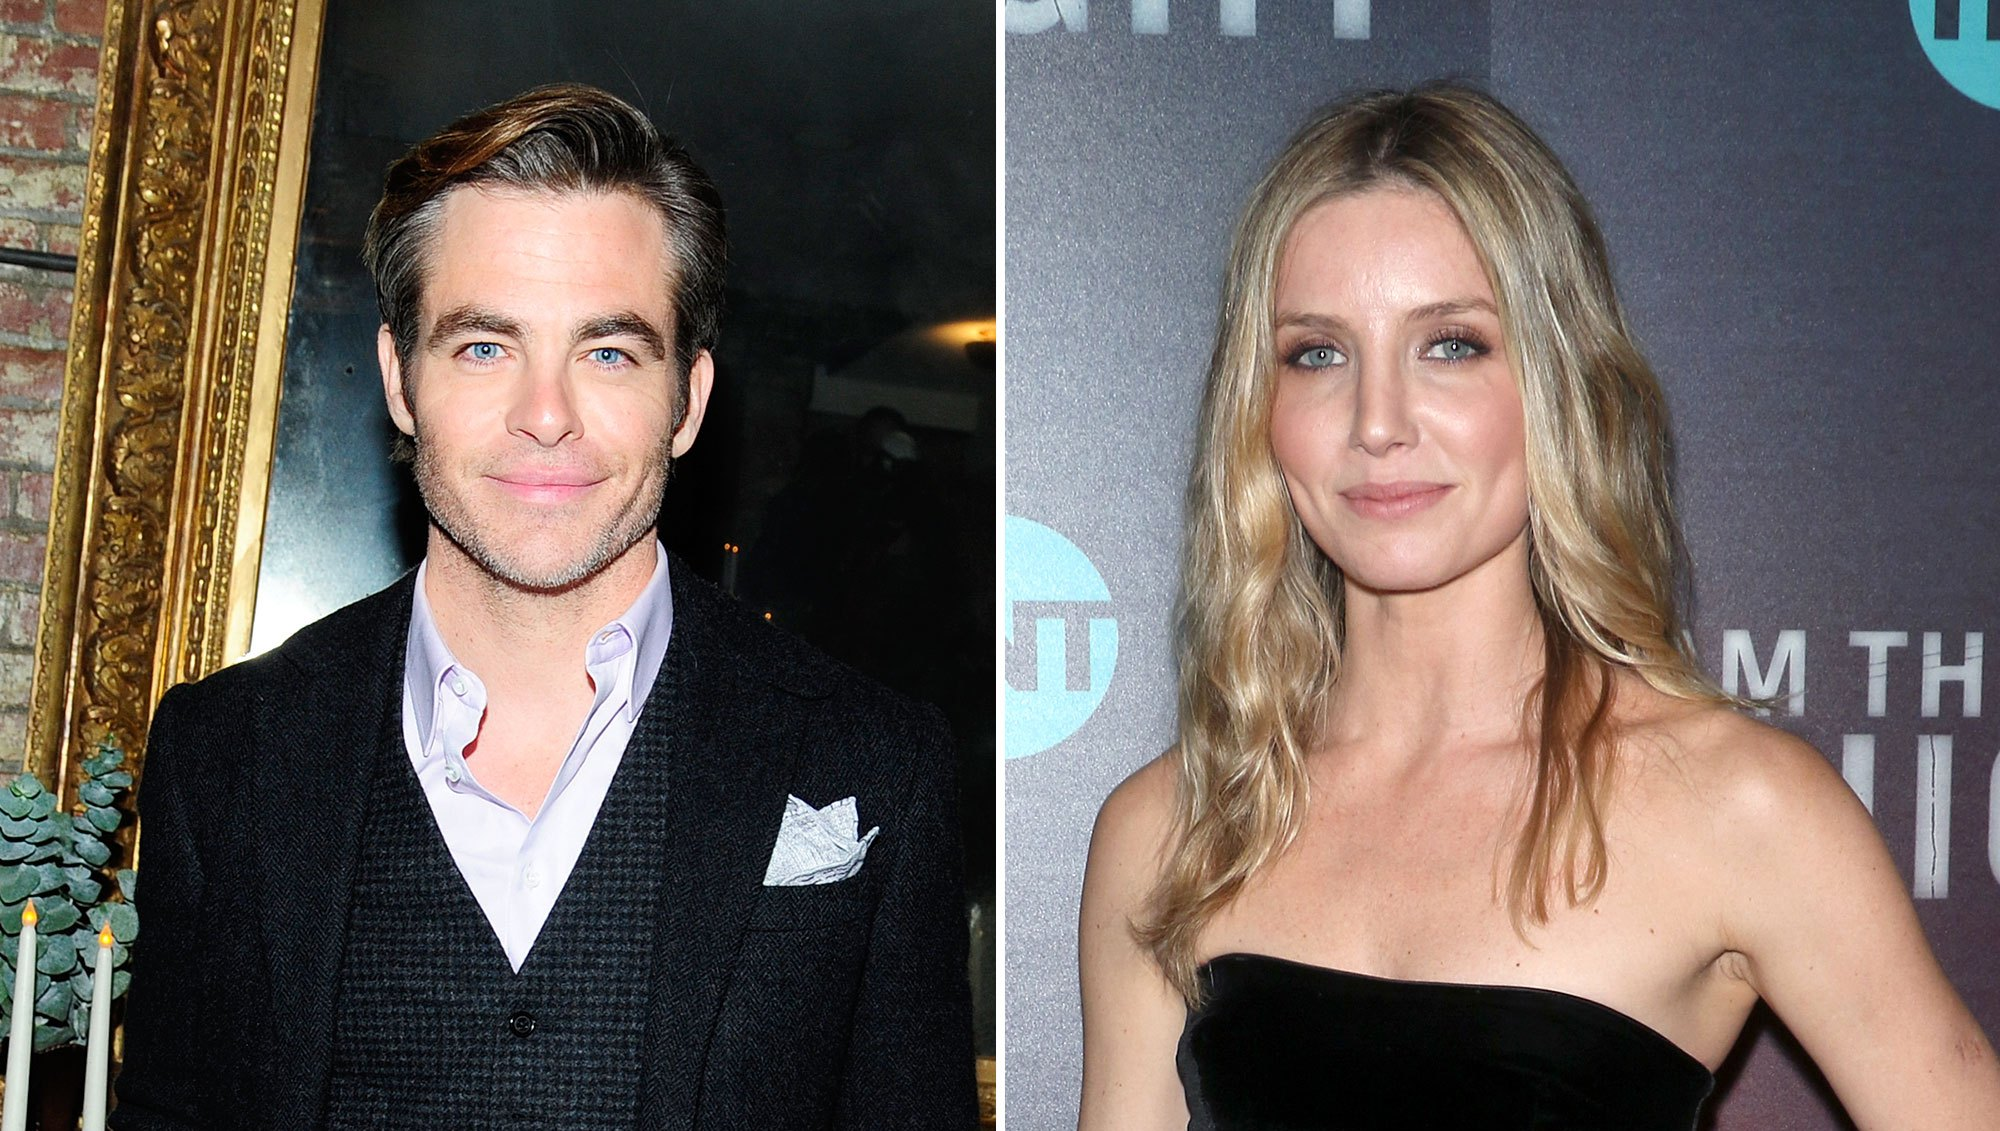 Chris Pine Annabelle Wallis Showed PDA Looked Very Cozy at Afterparty